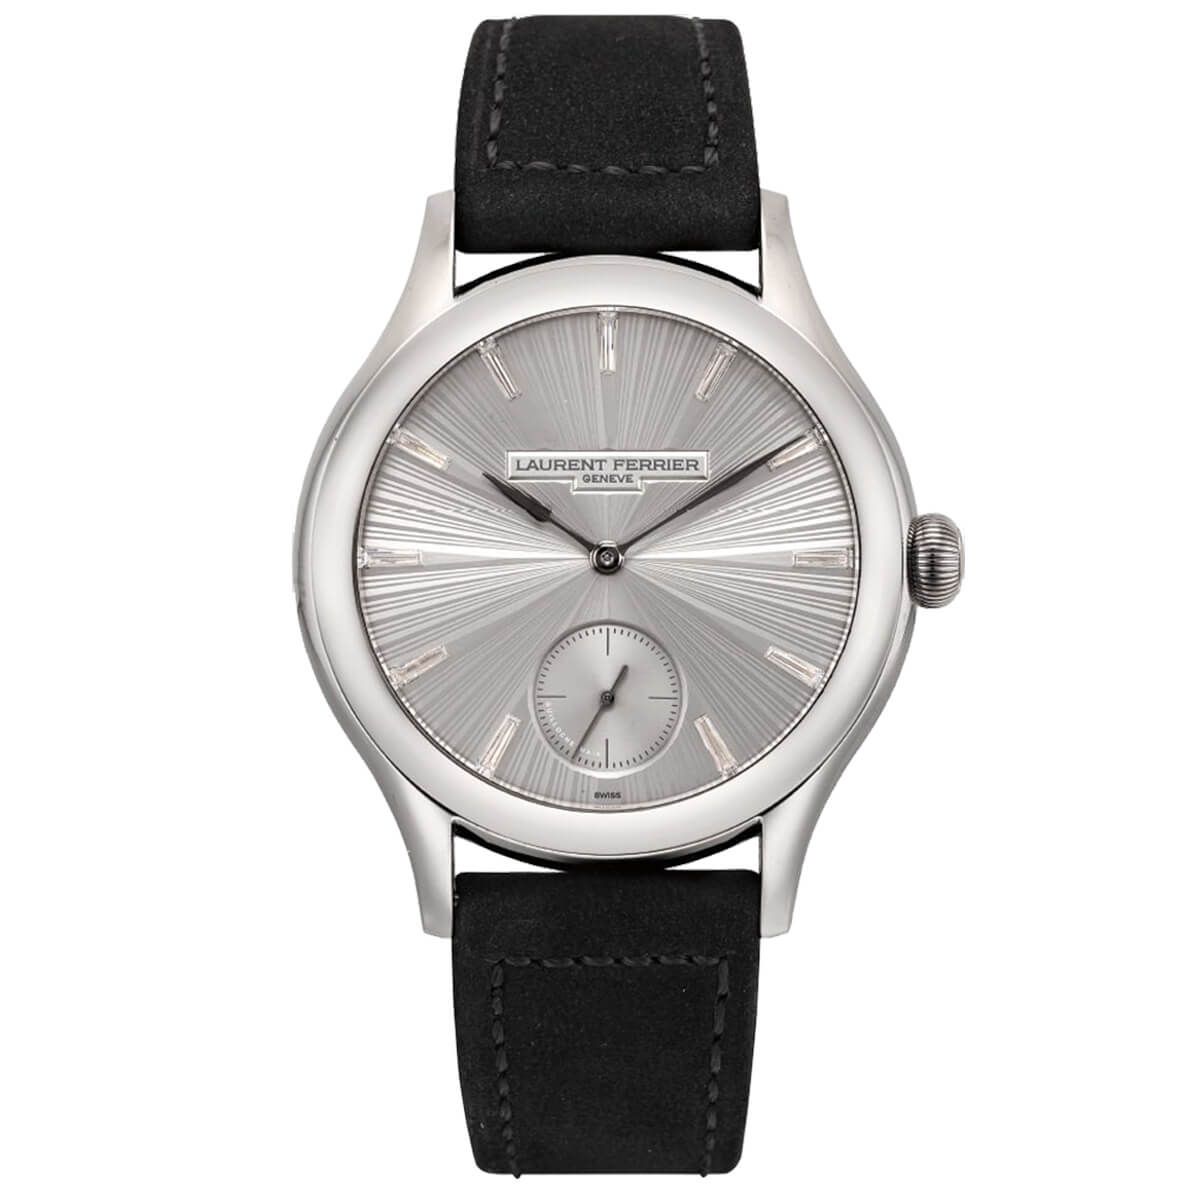 Laurent Ferrier Galet Classic Unique Piece